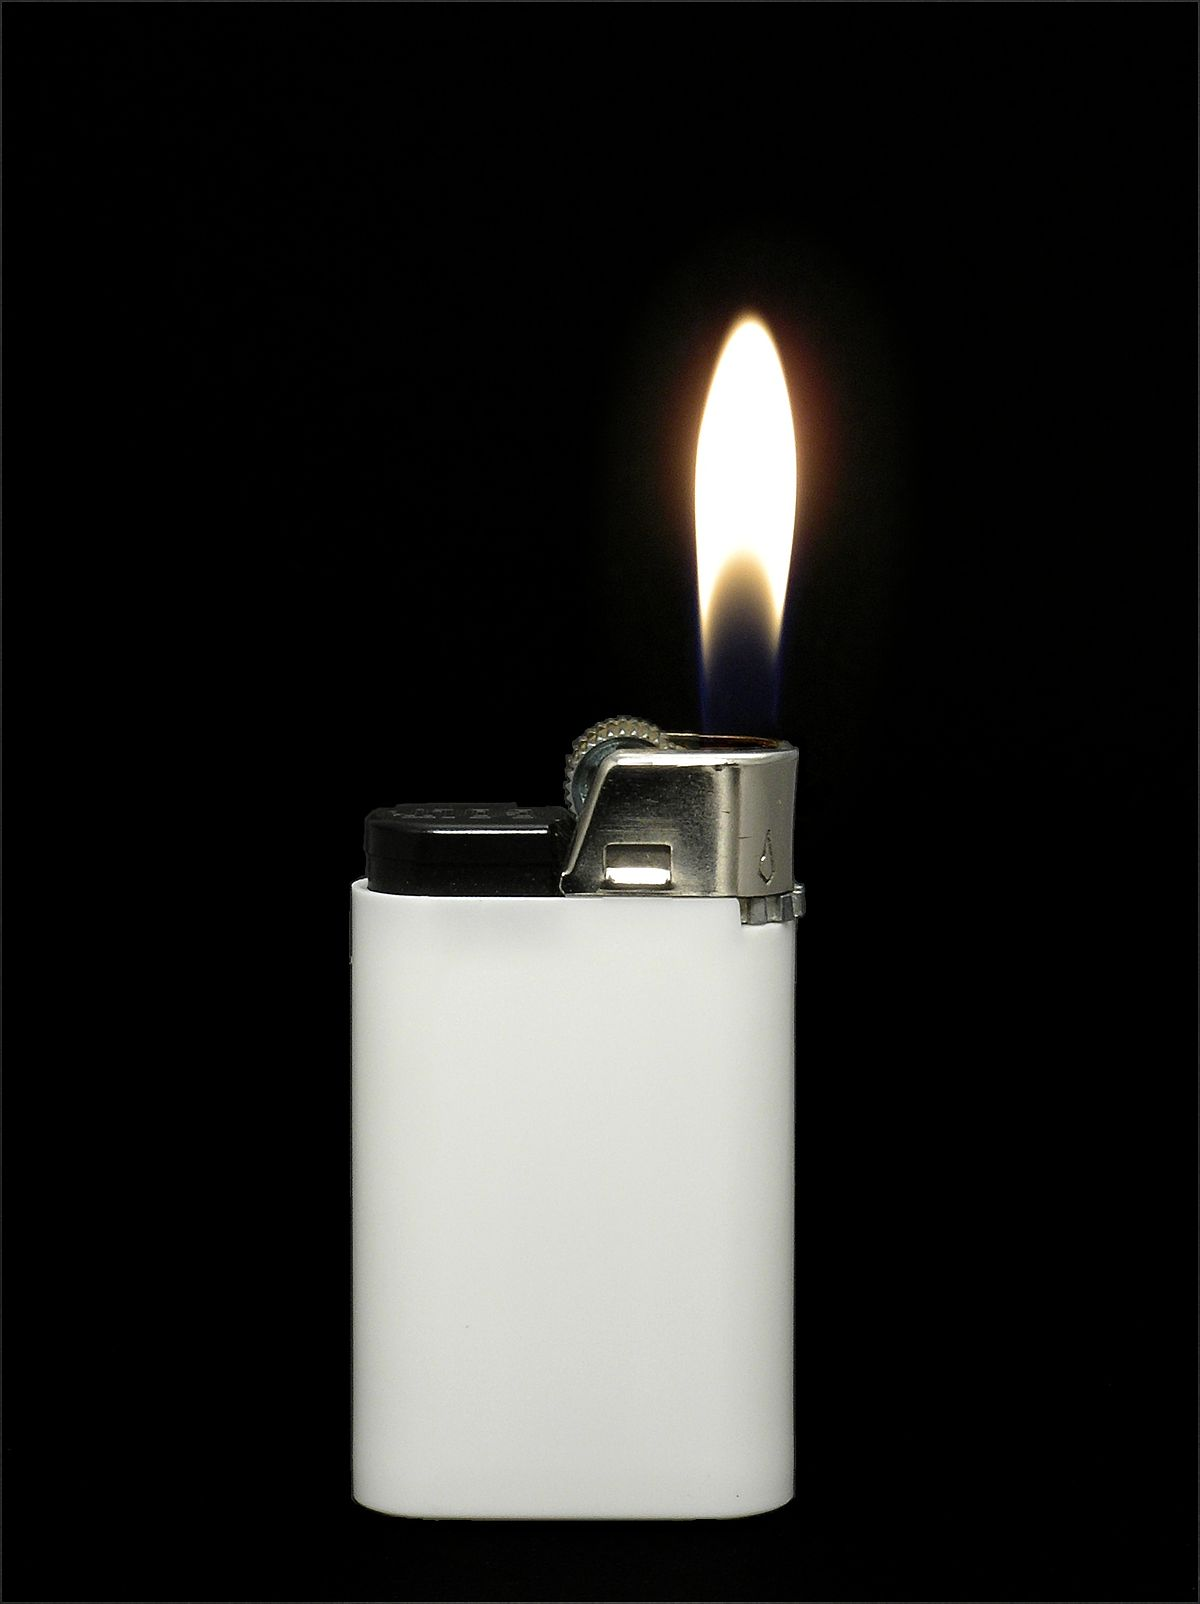 Zippo Lighters Flame Lighter - Wikipedia